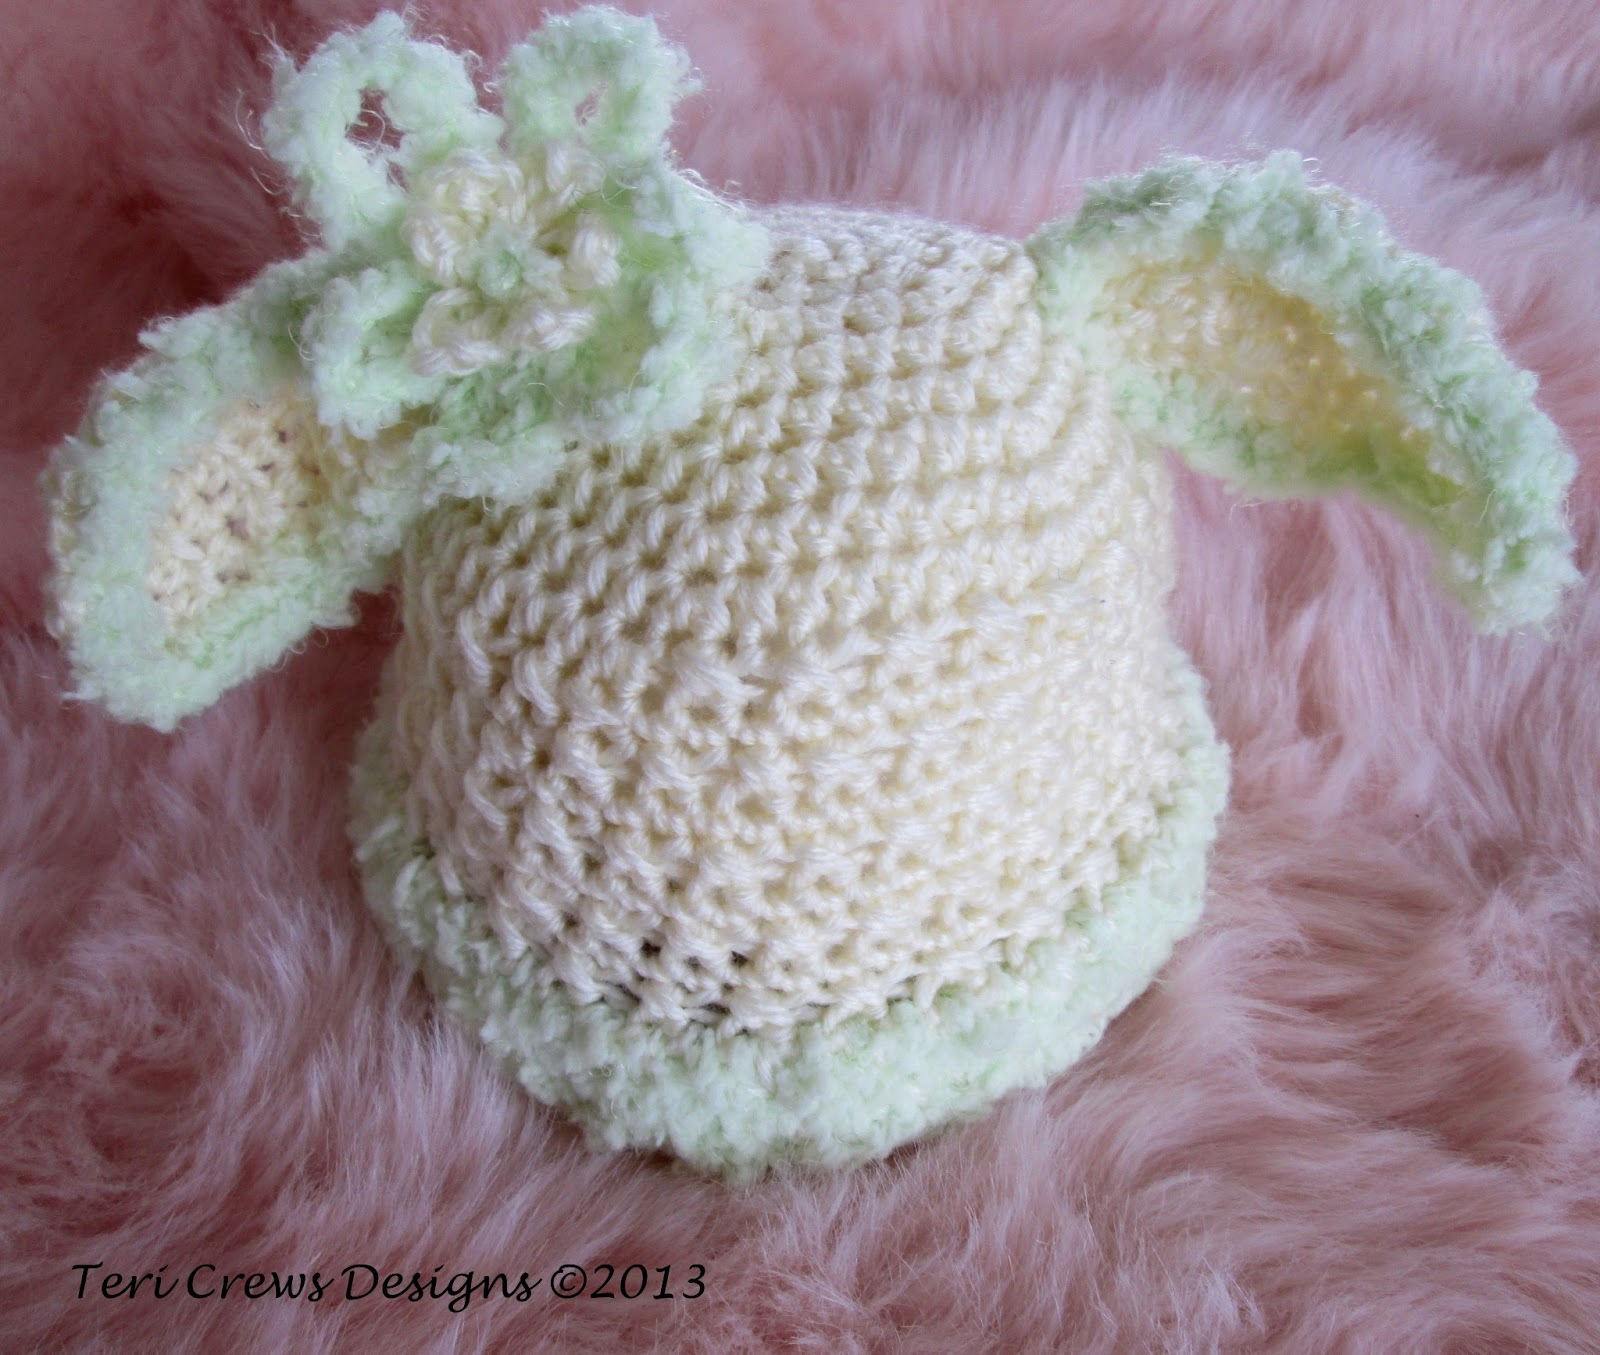 Crochet Pattern For Newborn Bunny Hat : Teris Blog: Bunny Baby Hat, Another Free Crochet Pattern